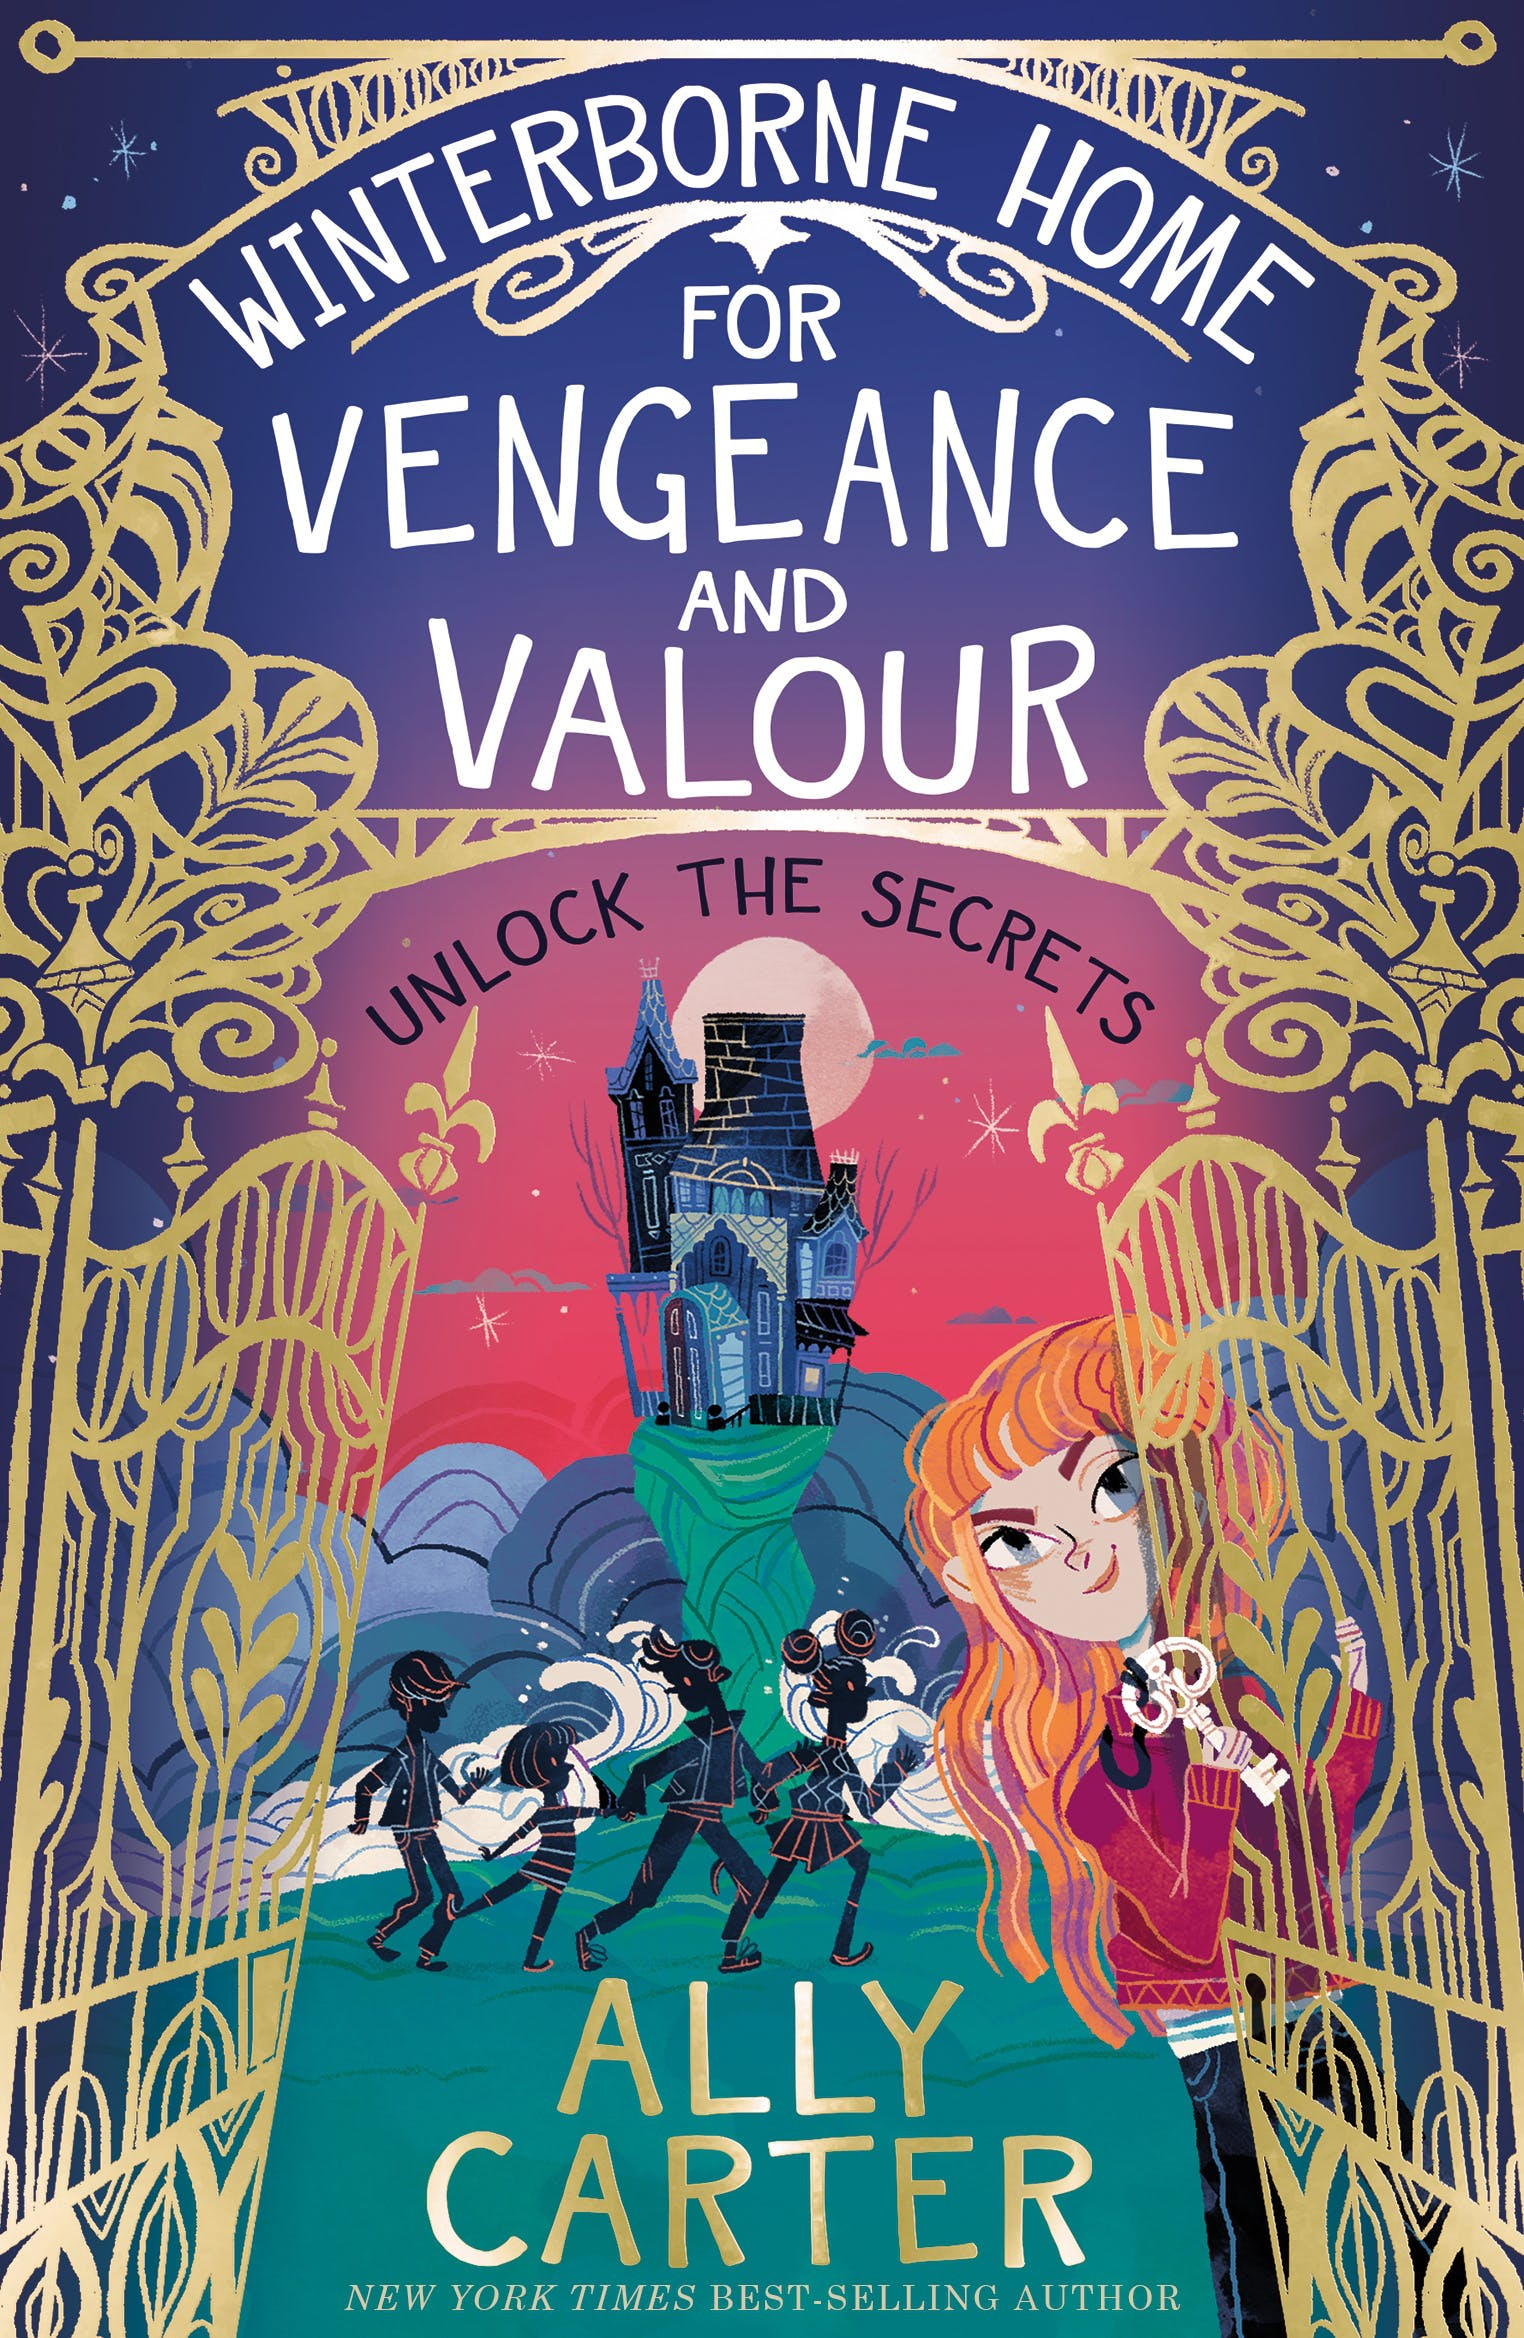 Winterborne Home for Vengeance and Valour by Ally Carter